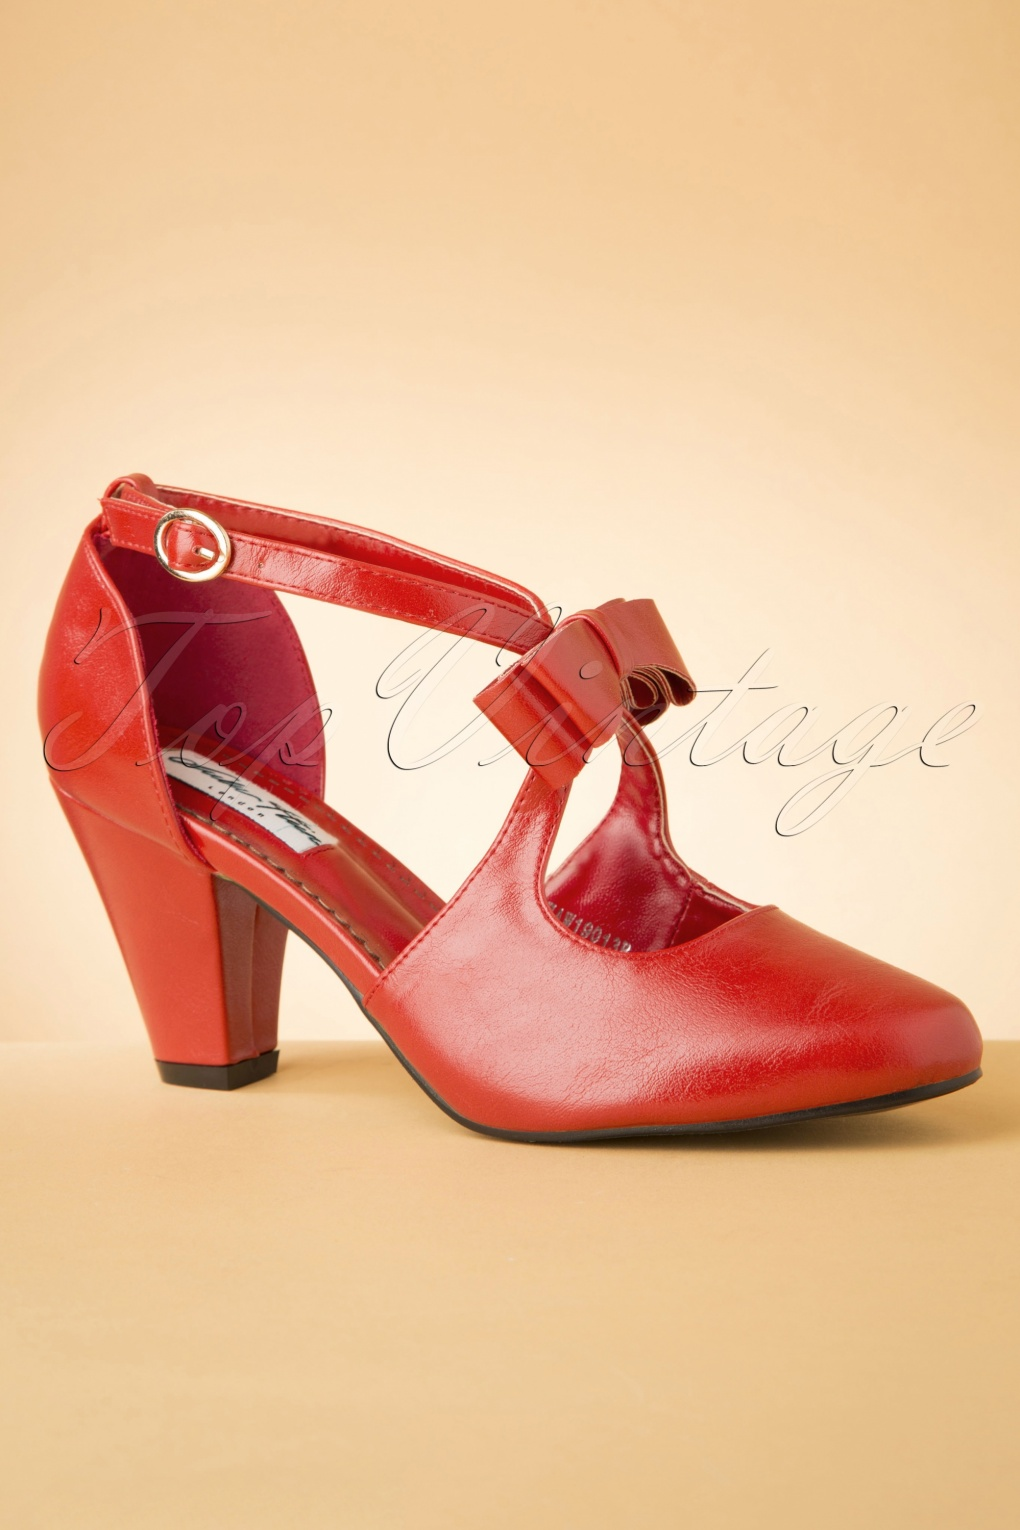 1950s Style Shoes | Heels, Flats, Saddle Shoes 50s Mona High Heels in Lipstick Red £48.63 AT vintagedancer.com